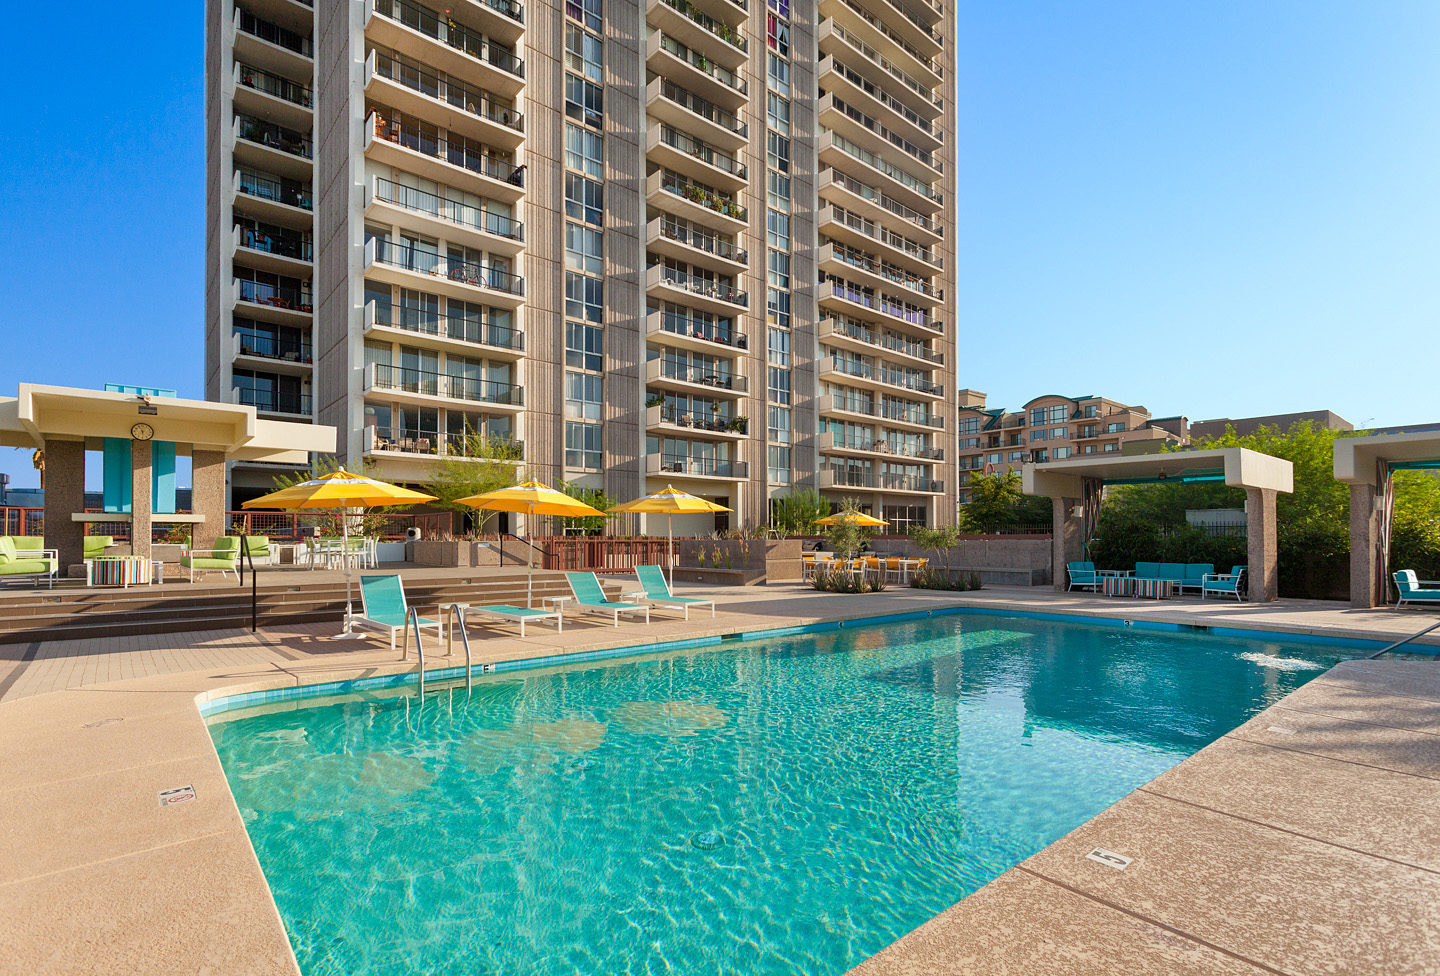 2323-N-Central-Ave-Phoenix-Downtown-Penthouse-14.jpg